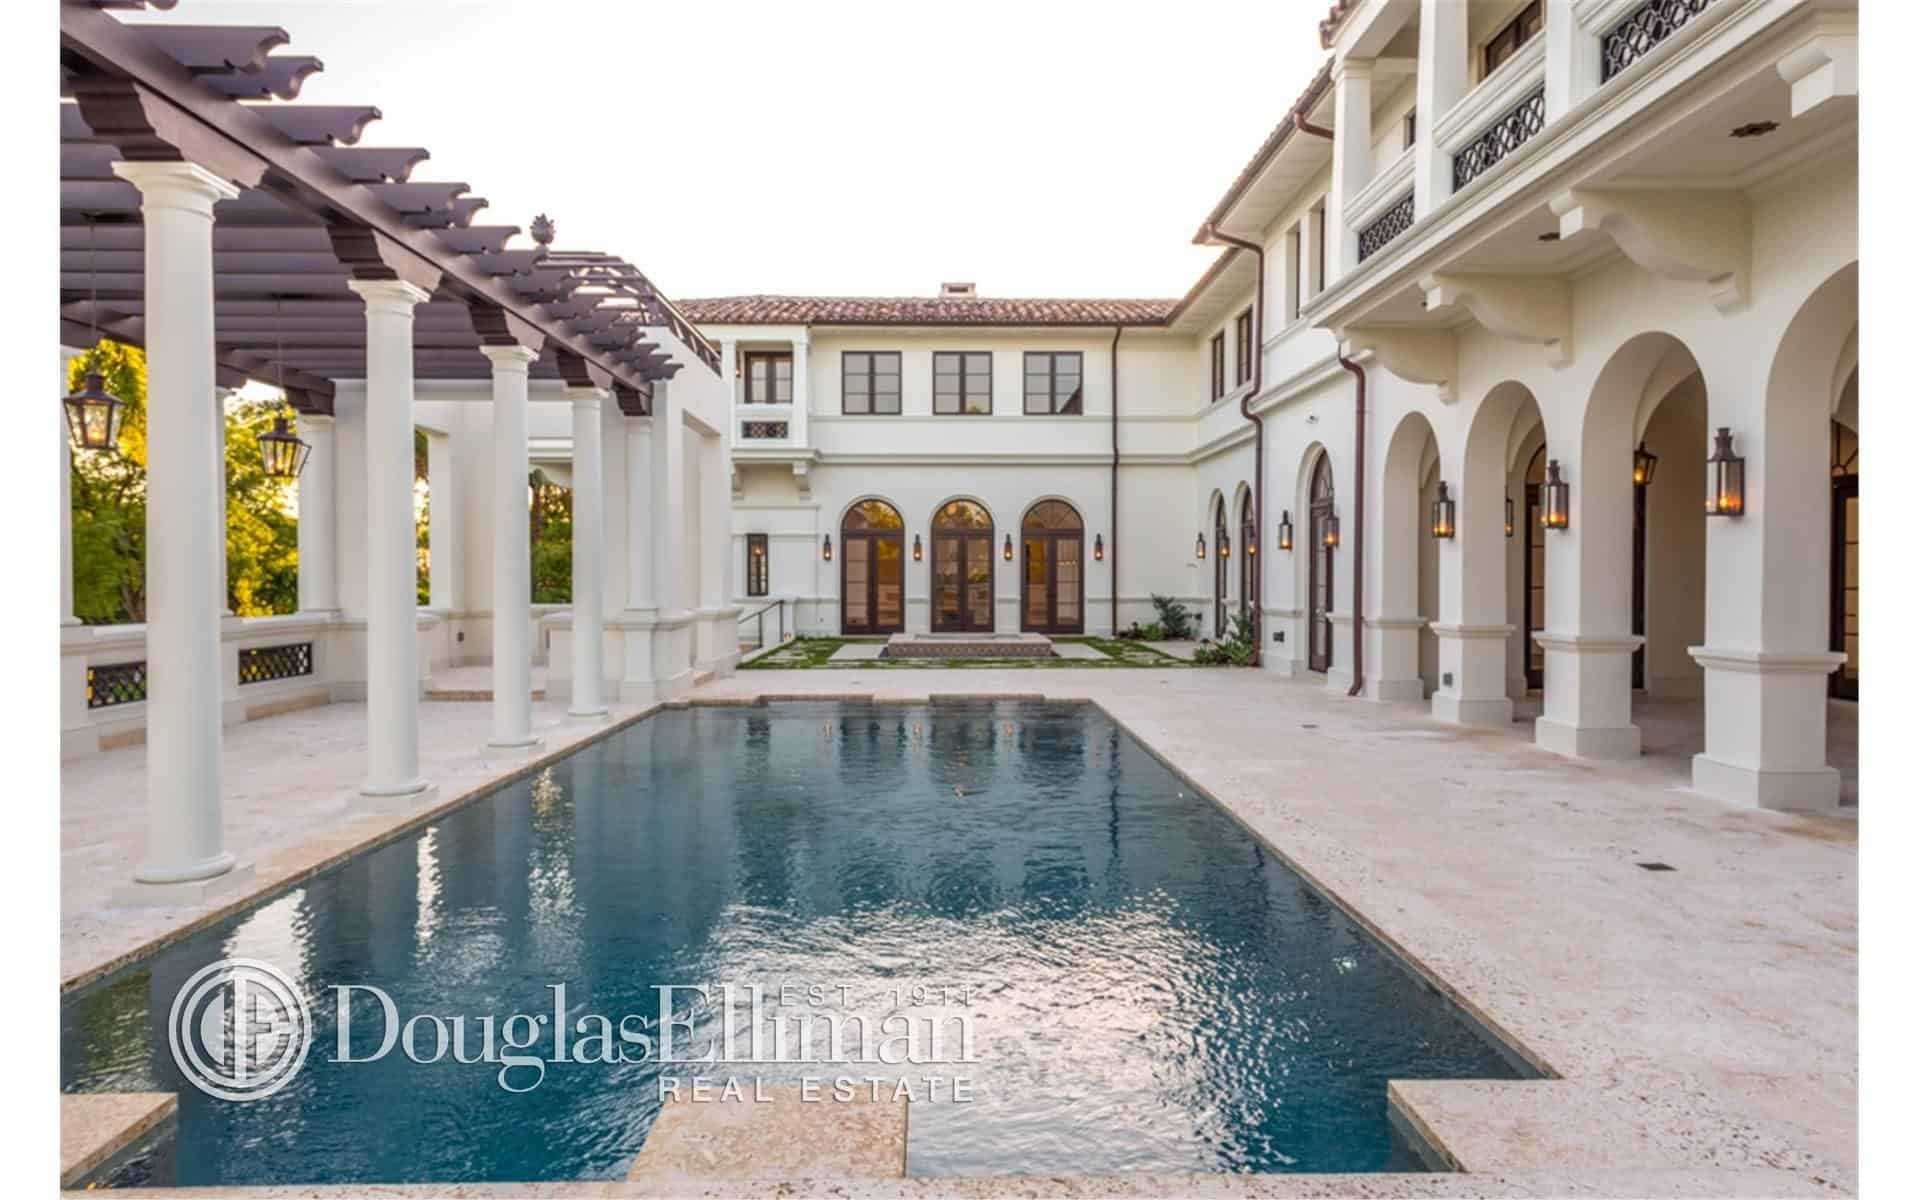 This mansion offers a large custom swimming pool set near the small garden area of the home.